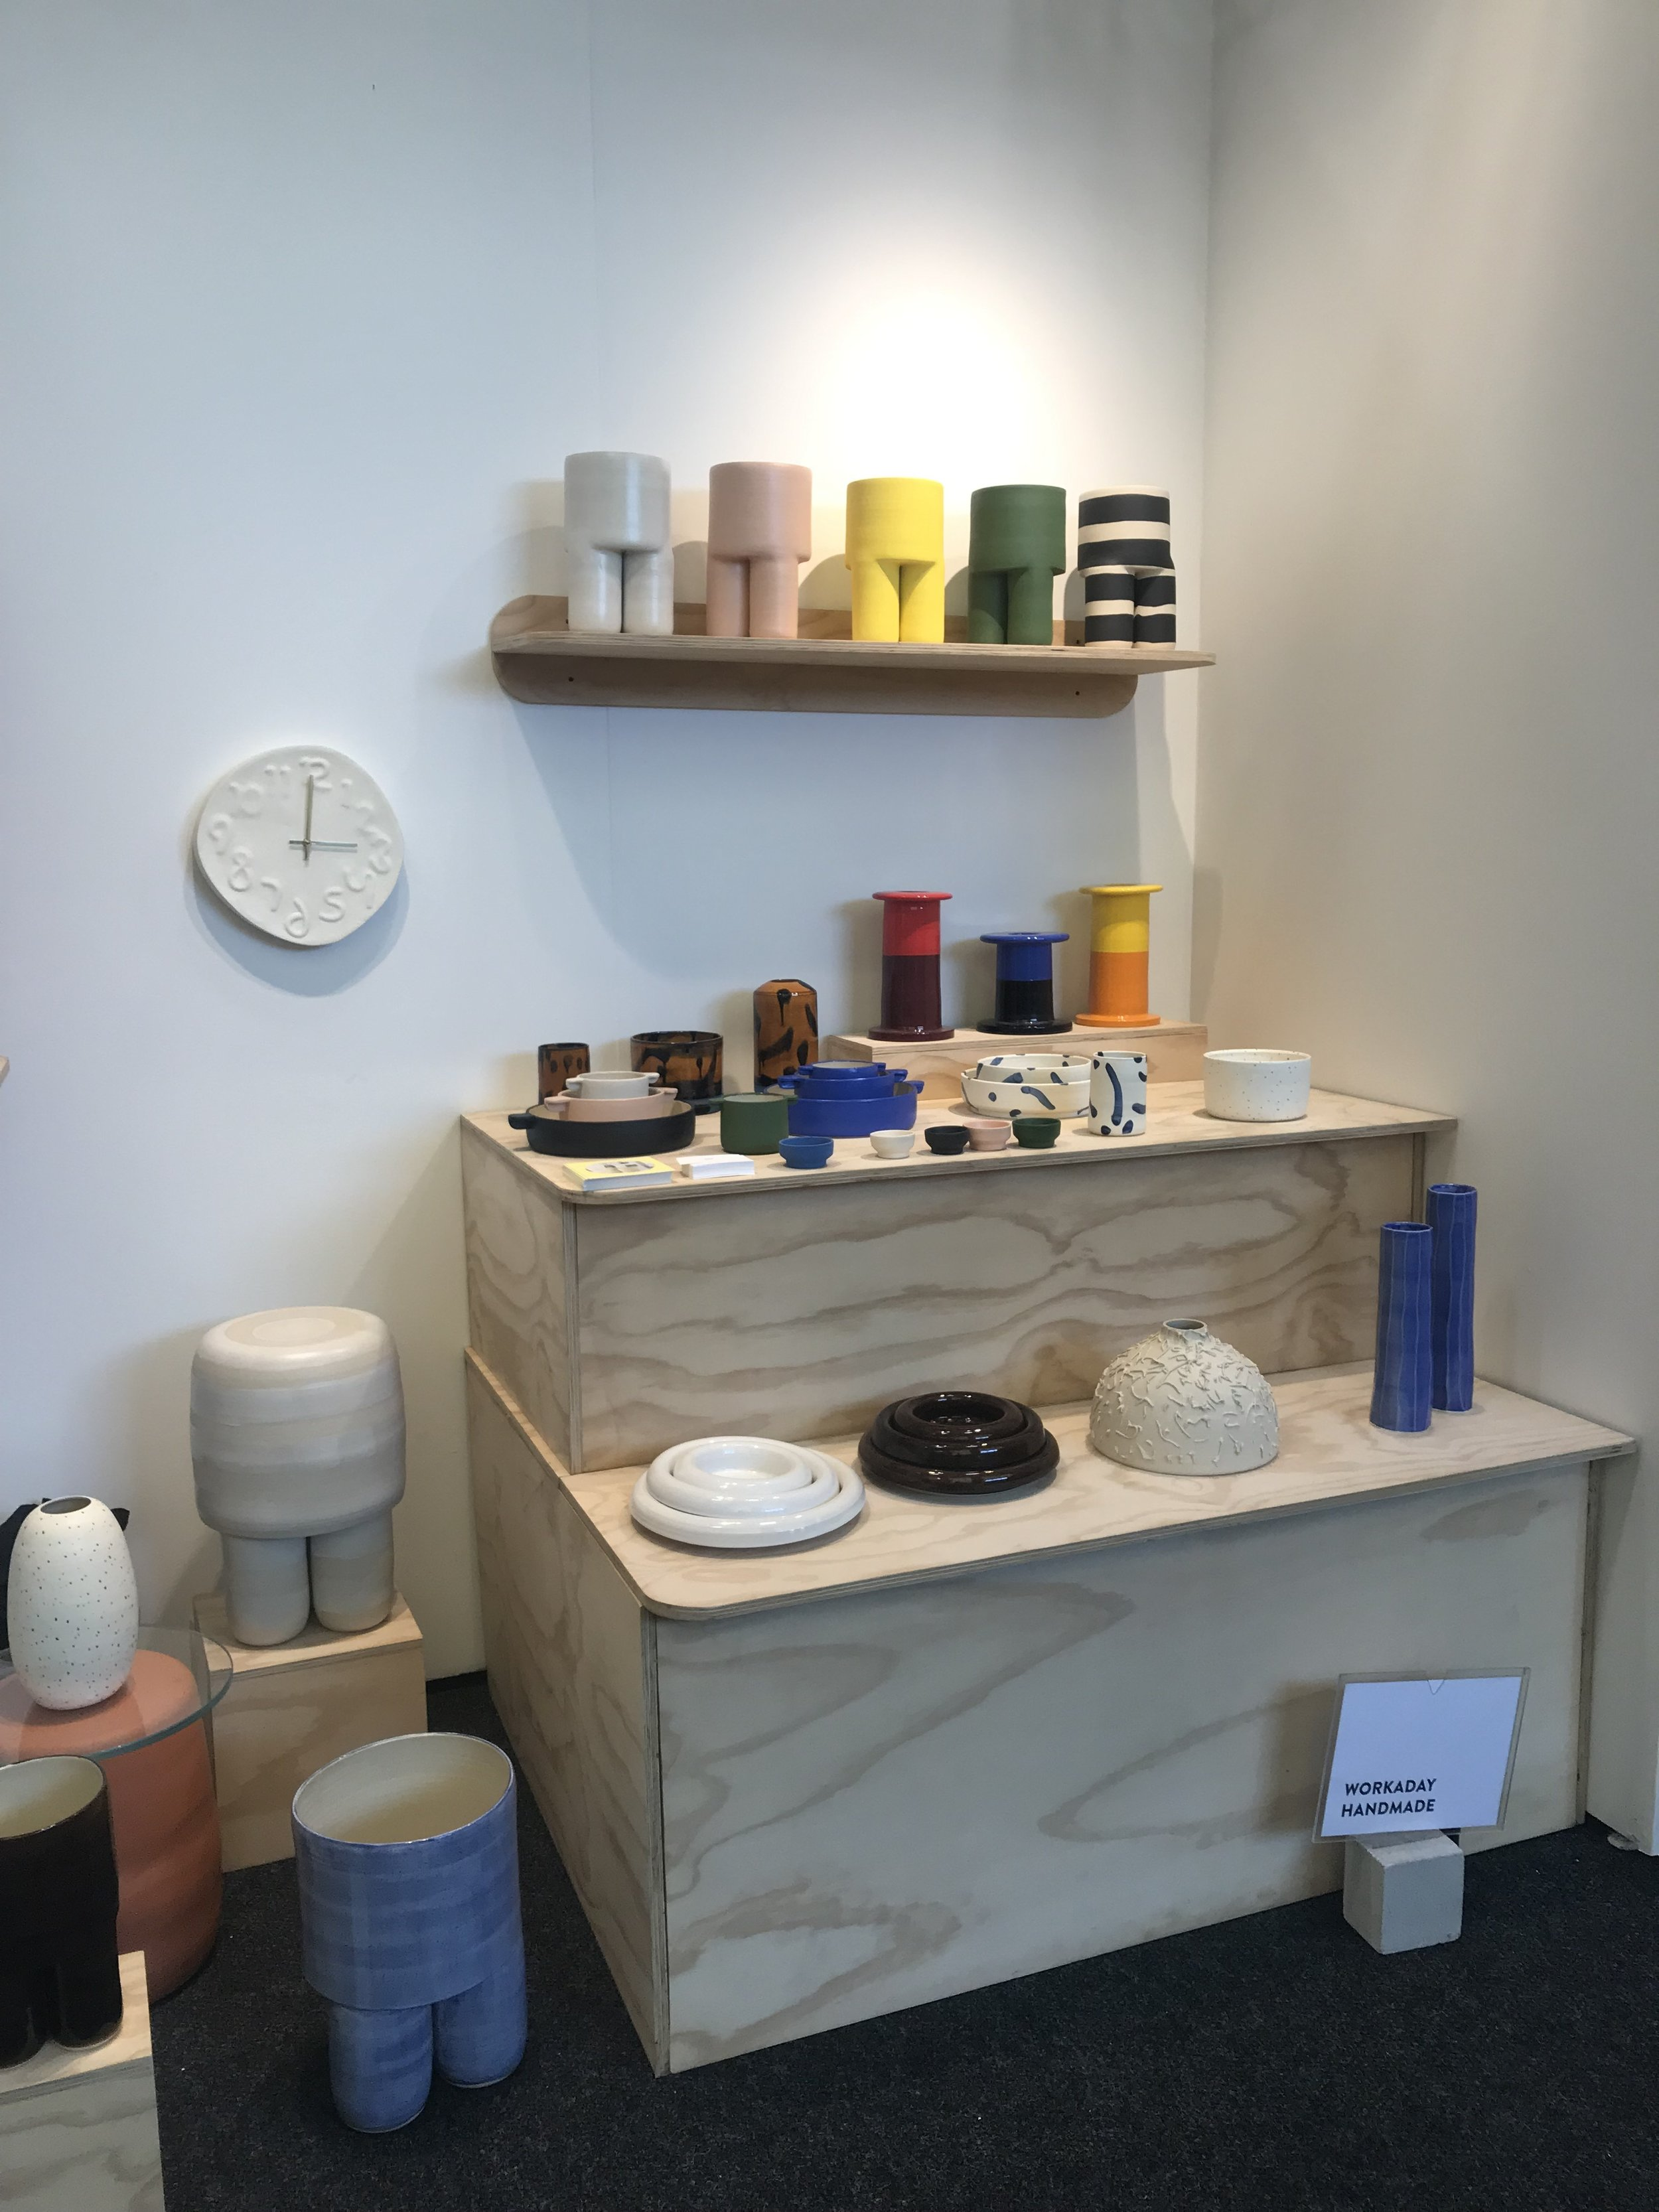 One of my favorite booths at the show,  Workaday Handmade Ceramics . So cute!